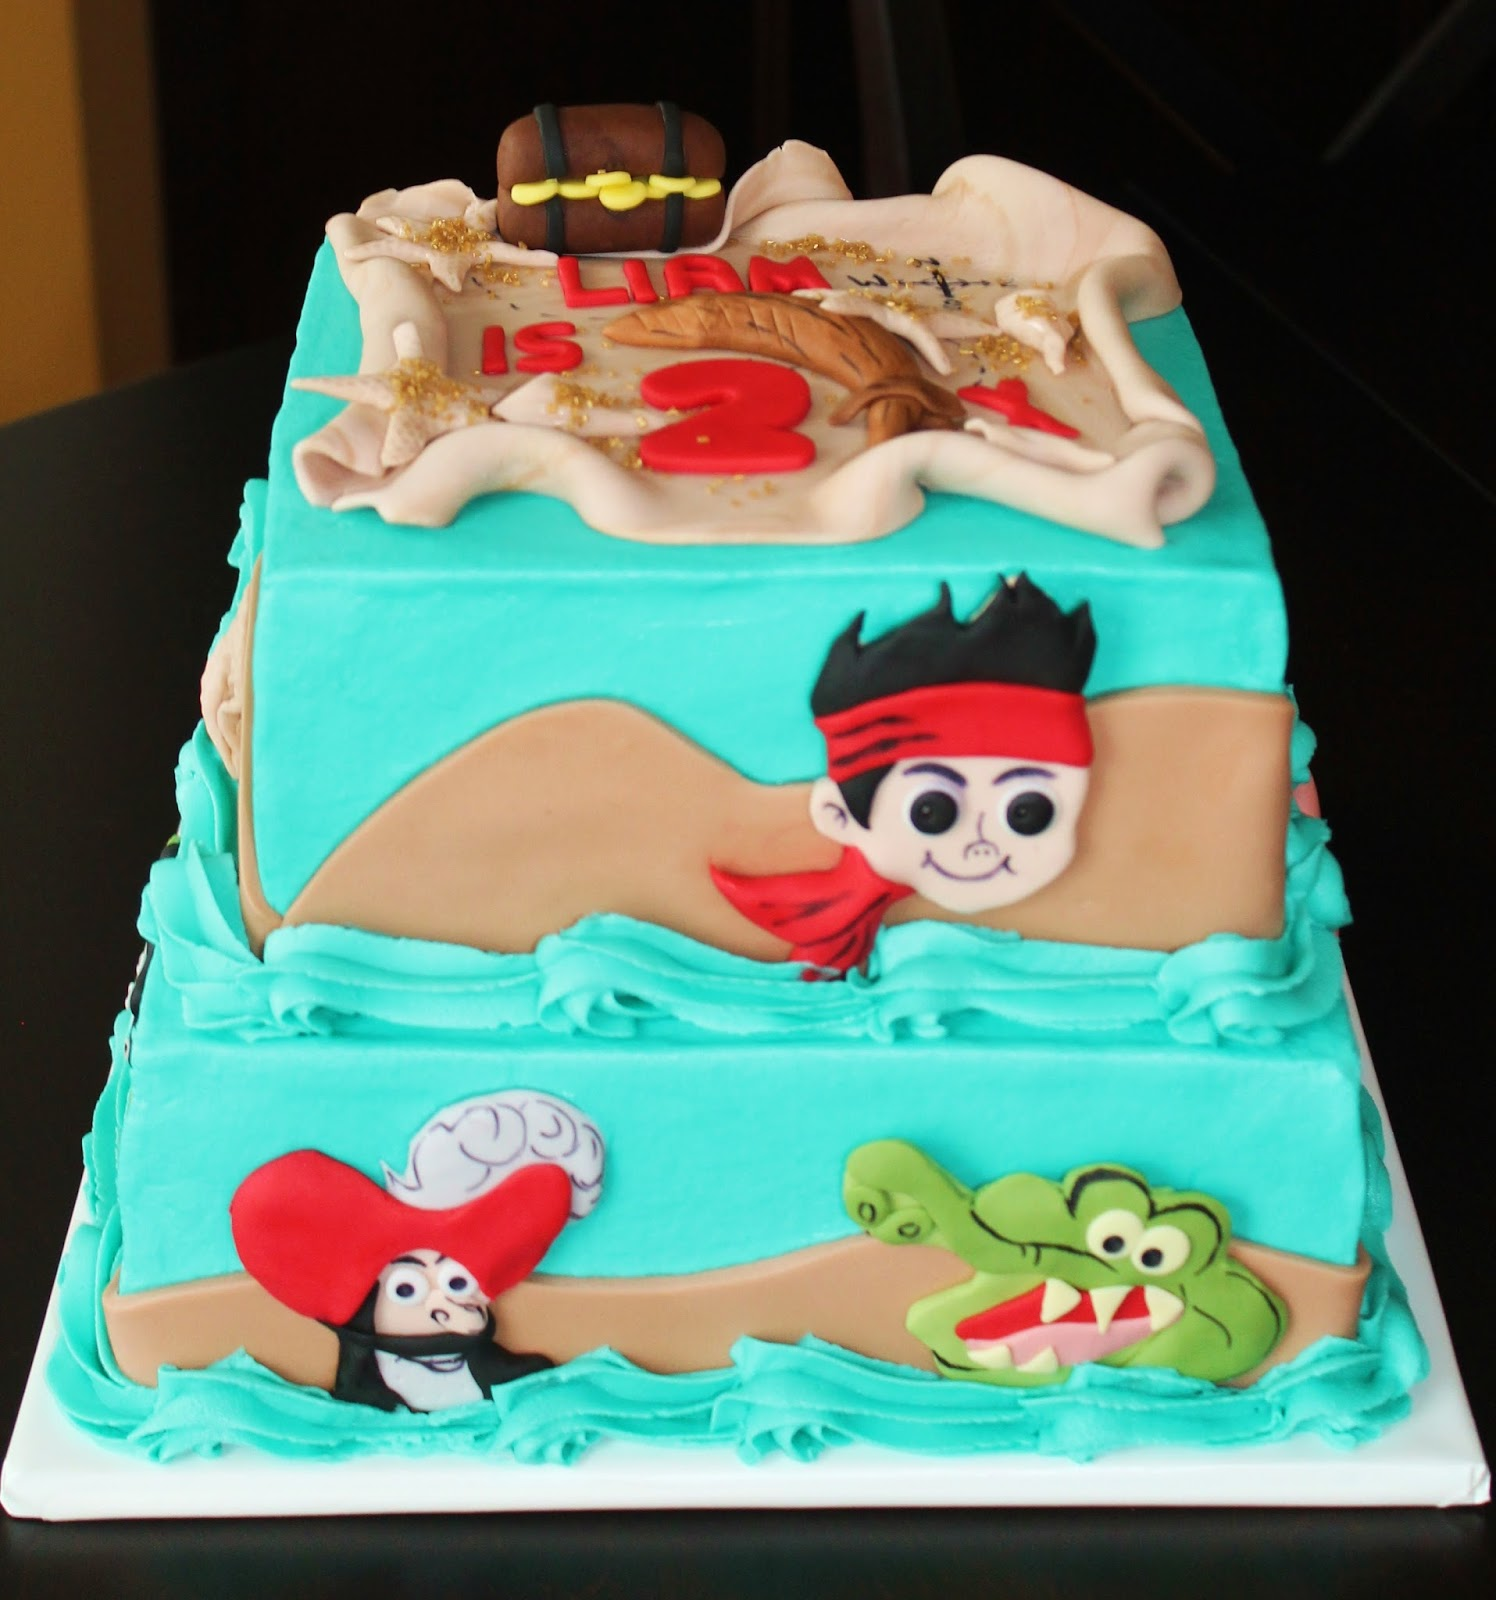 jake and the neverland pirates tiered cake - photo #8